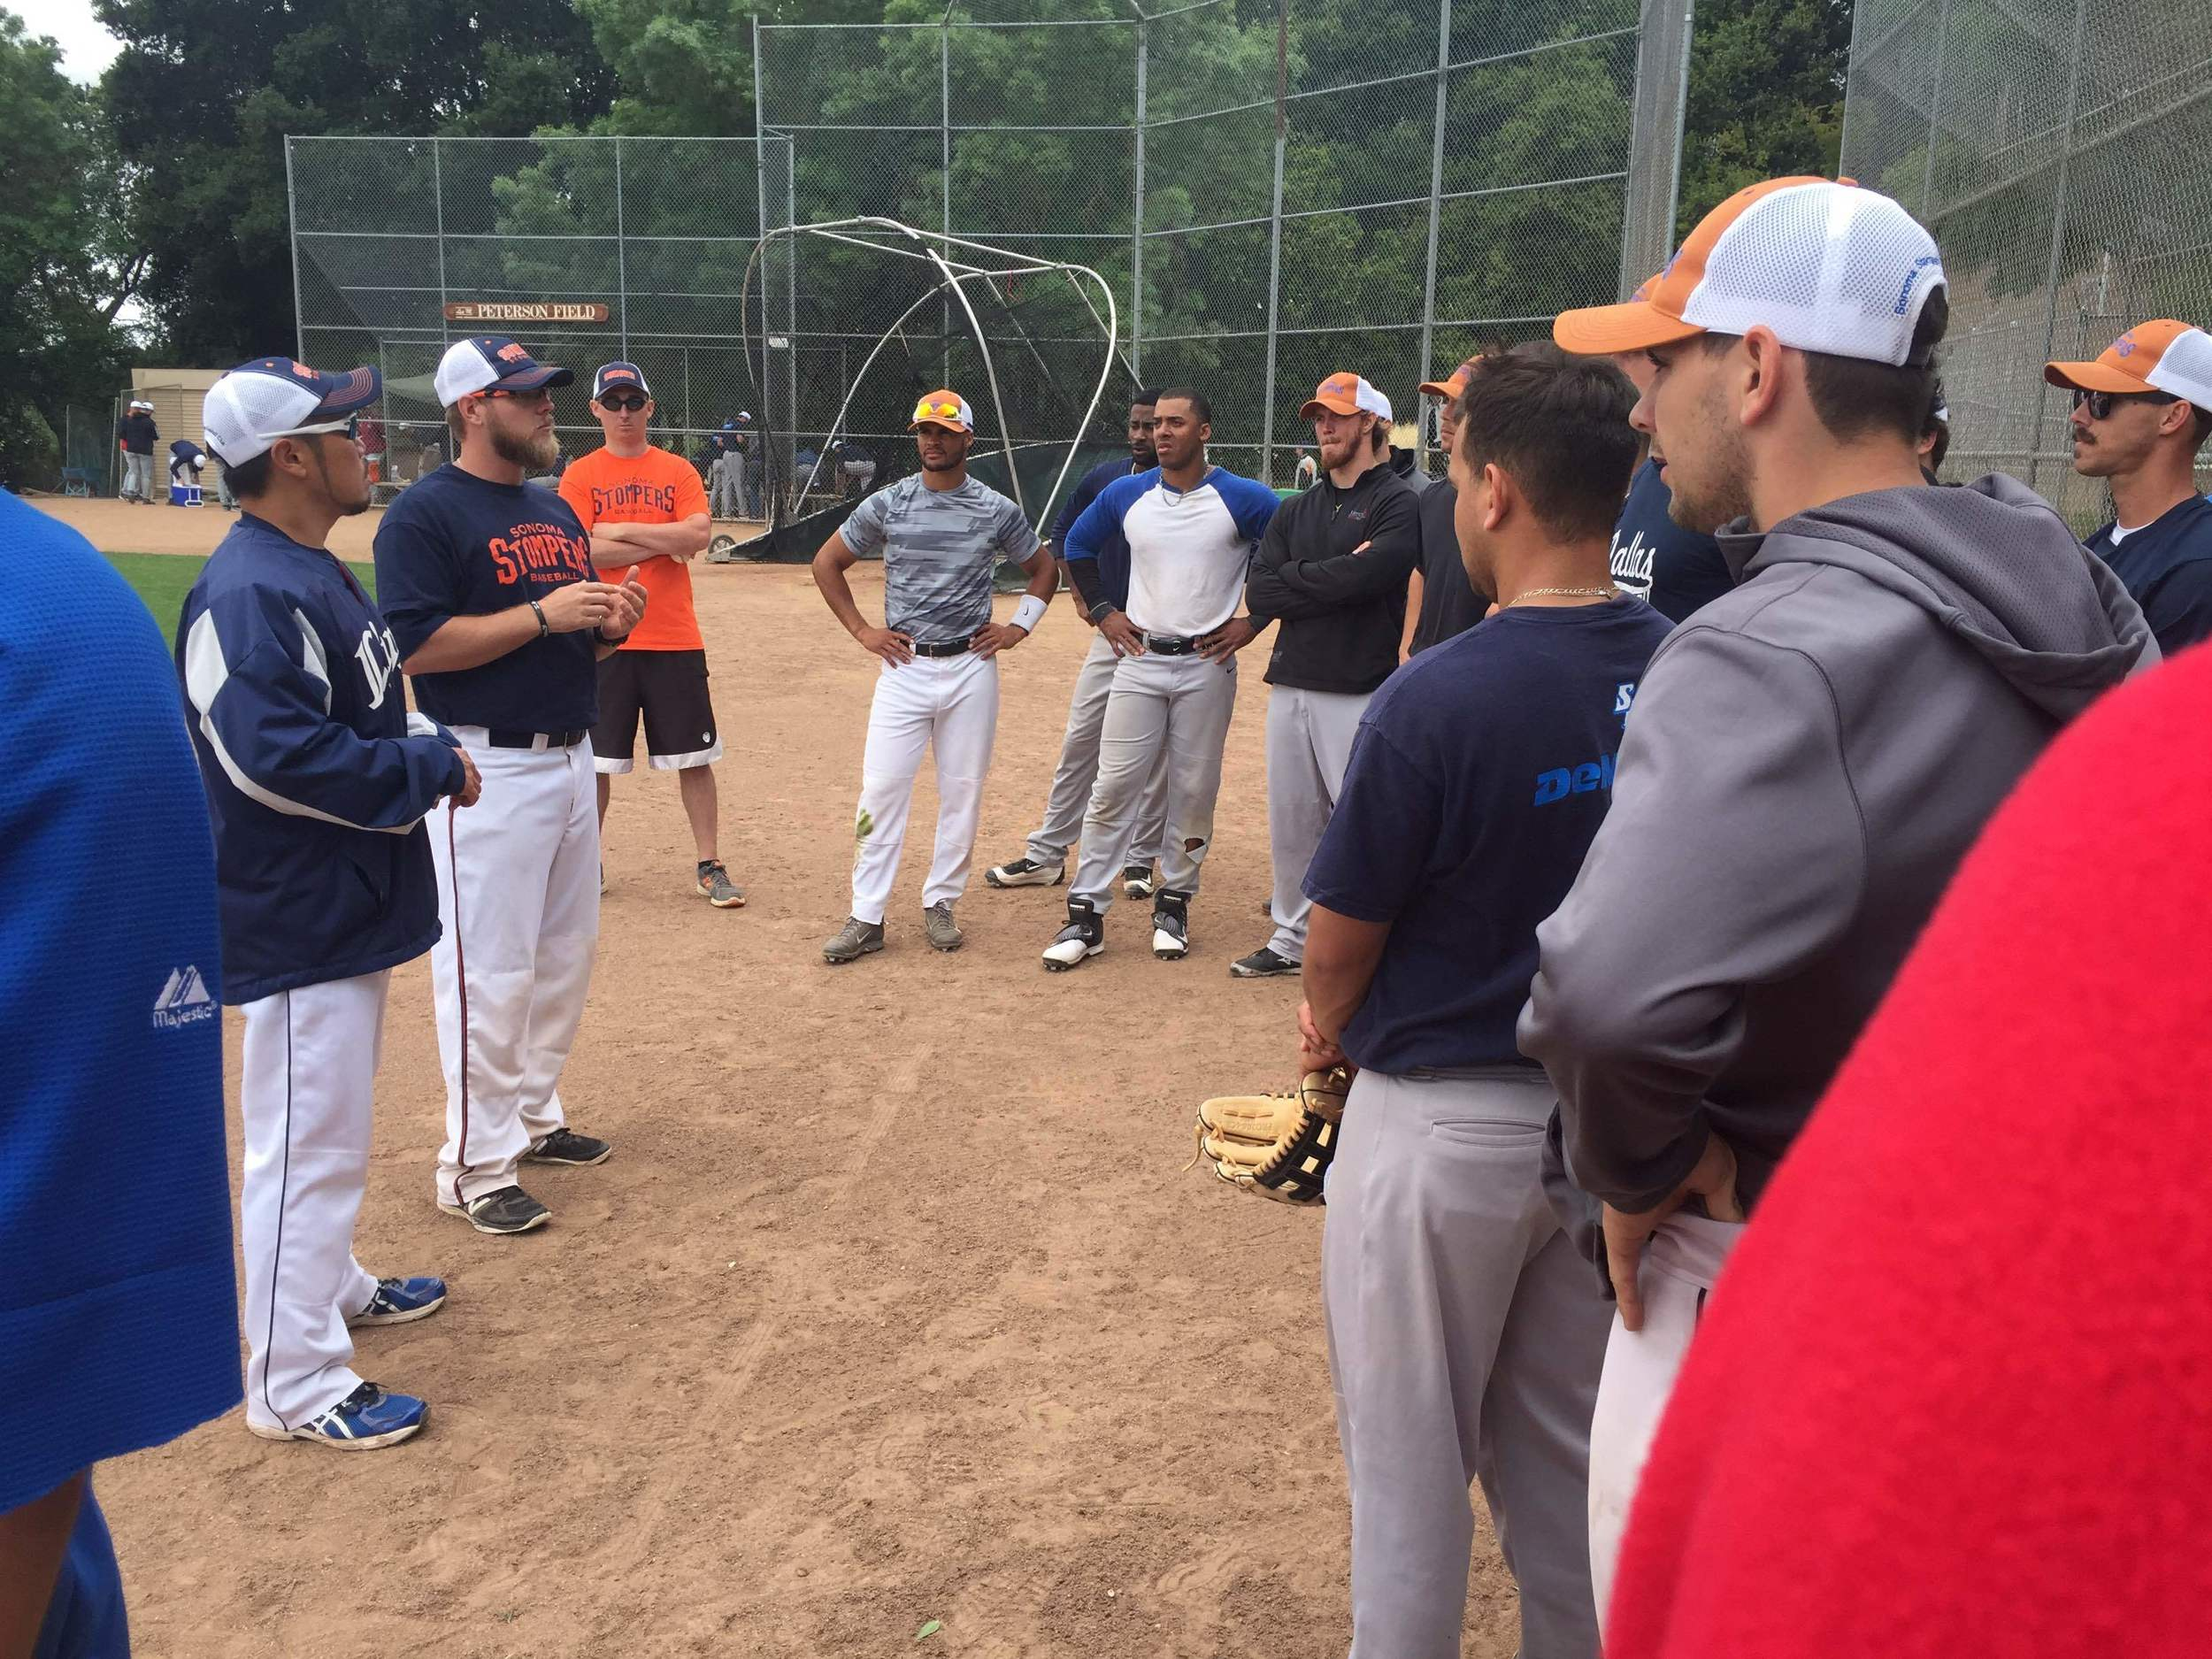 Manager Takashi Miyoshi and bench coach Chris Mathews address the team.   Tim Livingston/Sonoma Stompers